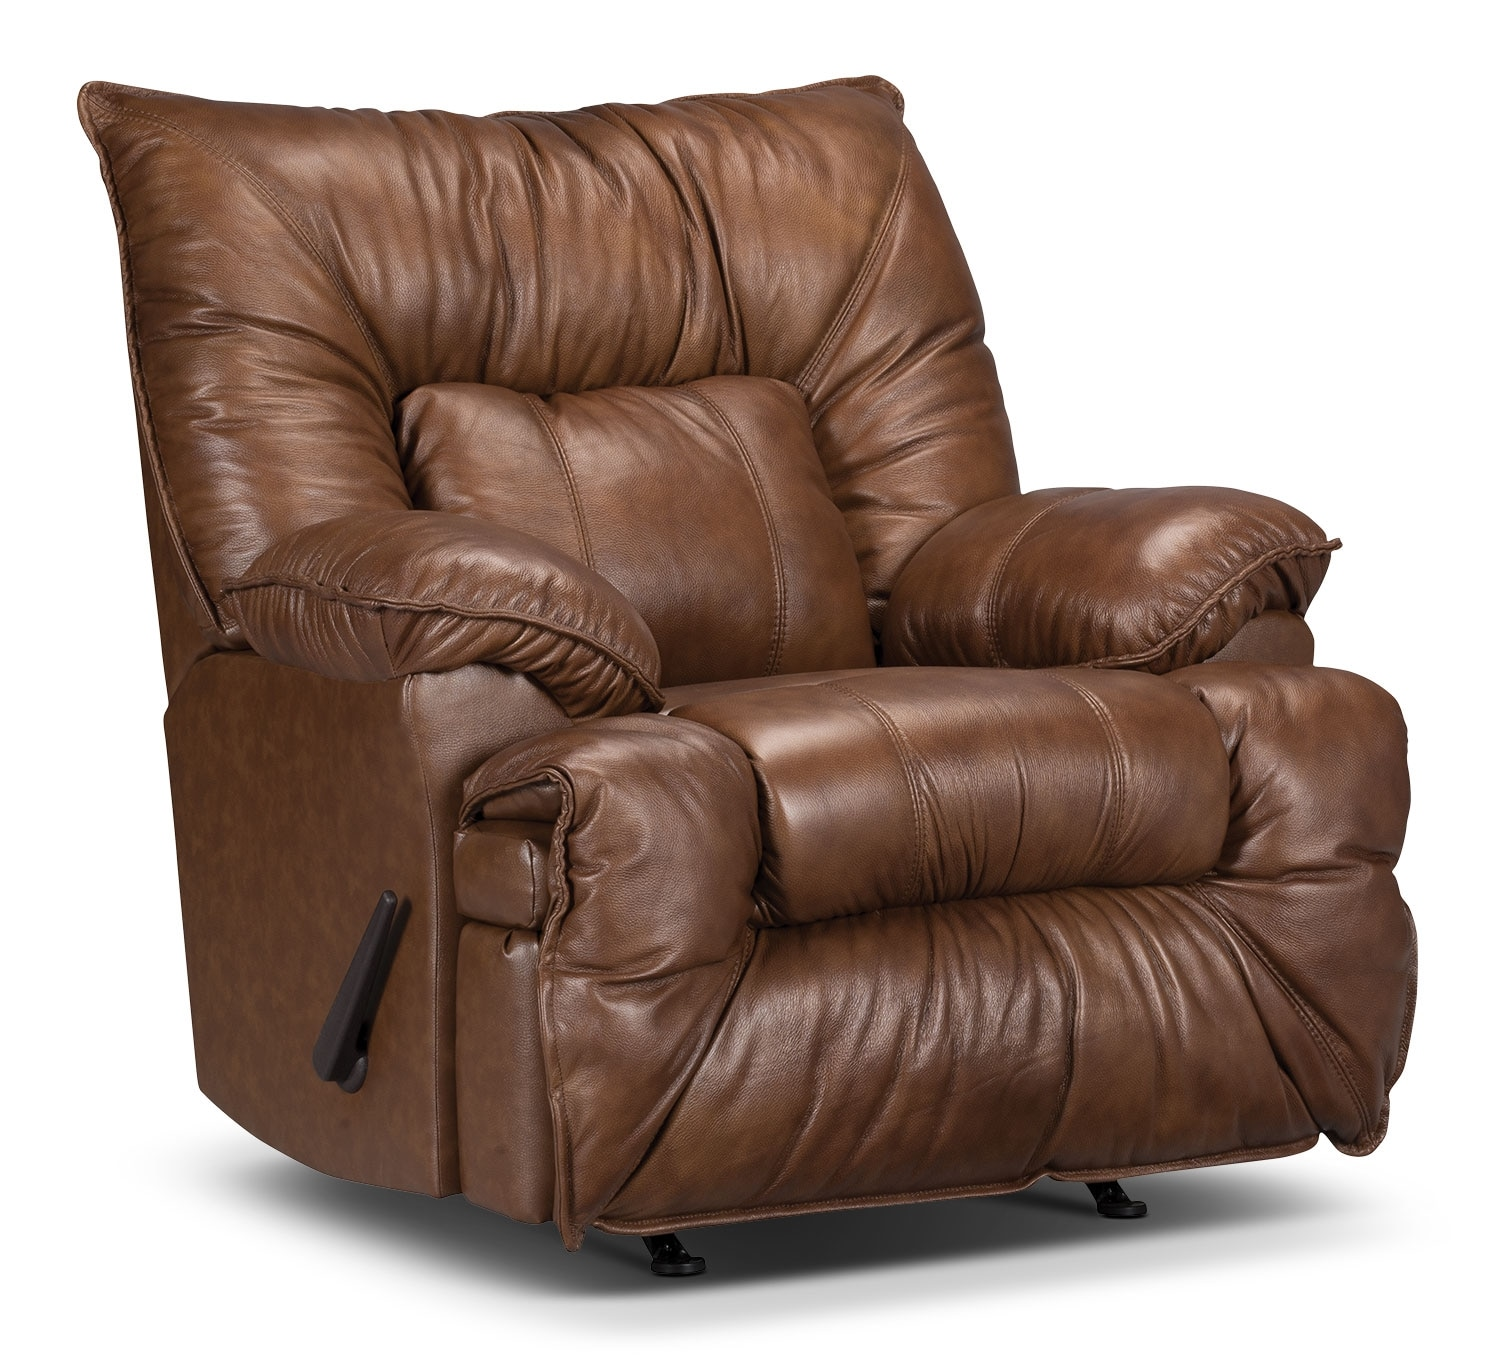 Designed2B Recliner 7726 Genuine Leather Rocker Chair - Saddle